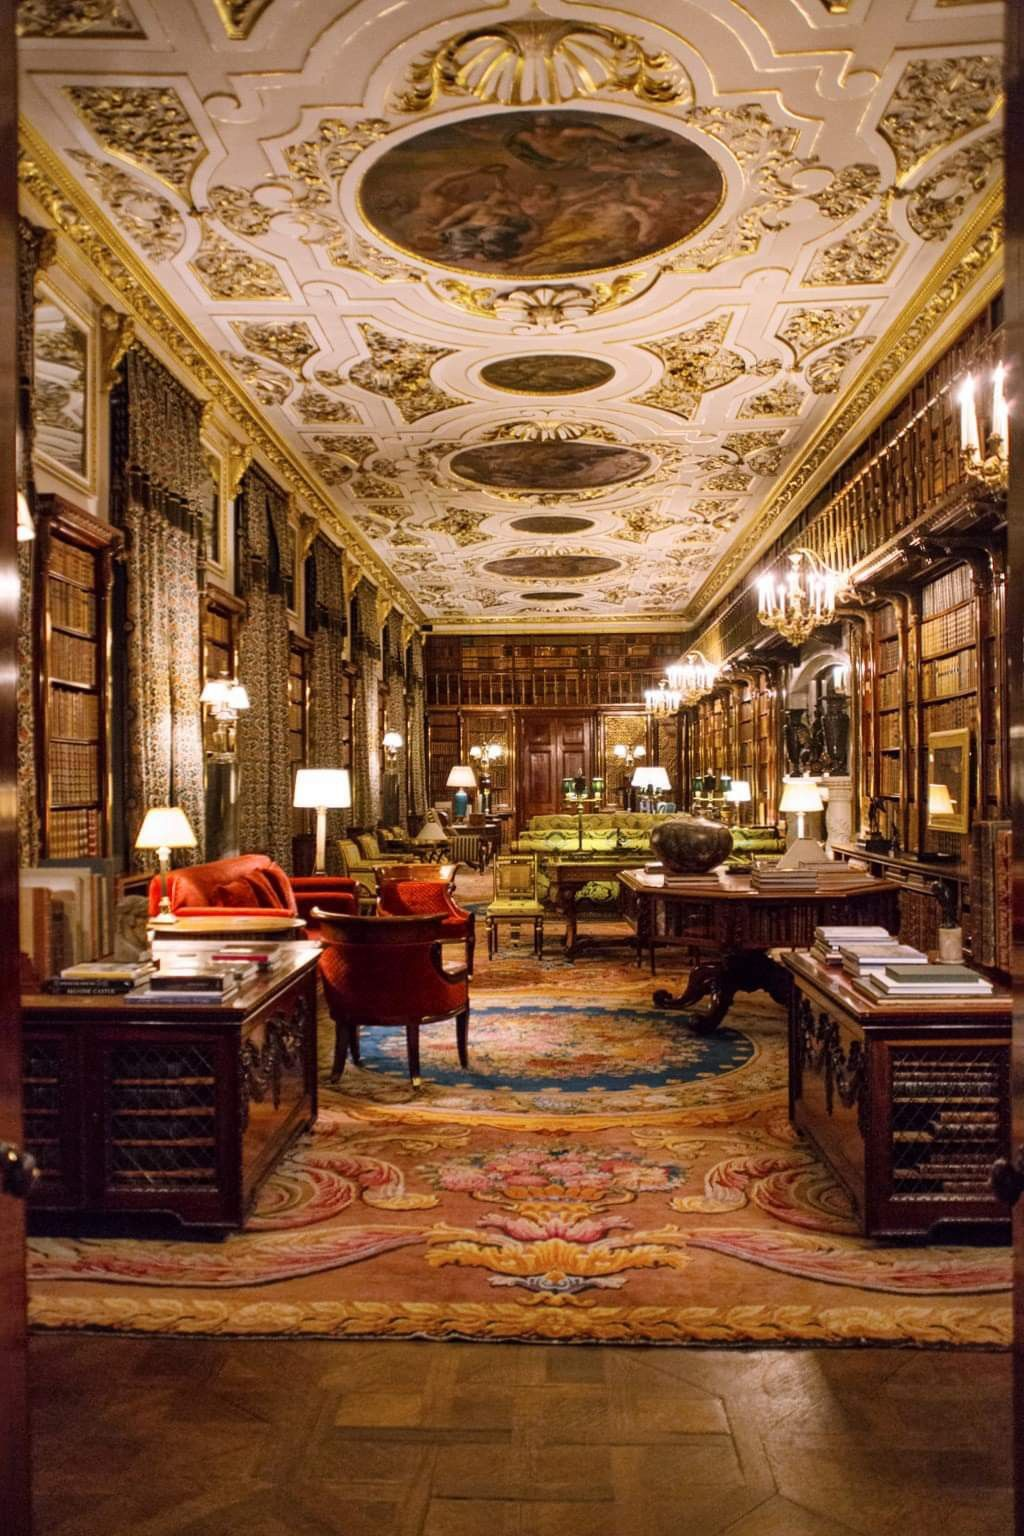 Chatsworth House Room: Pin By Ronald Cormier On Home In 2020